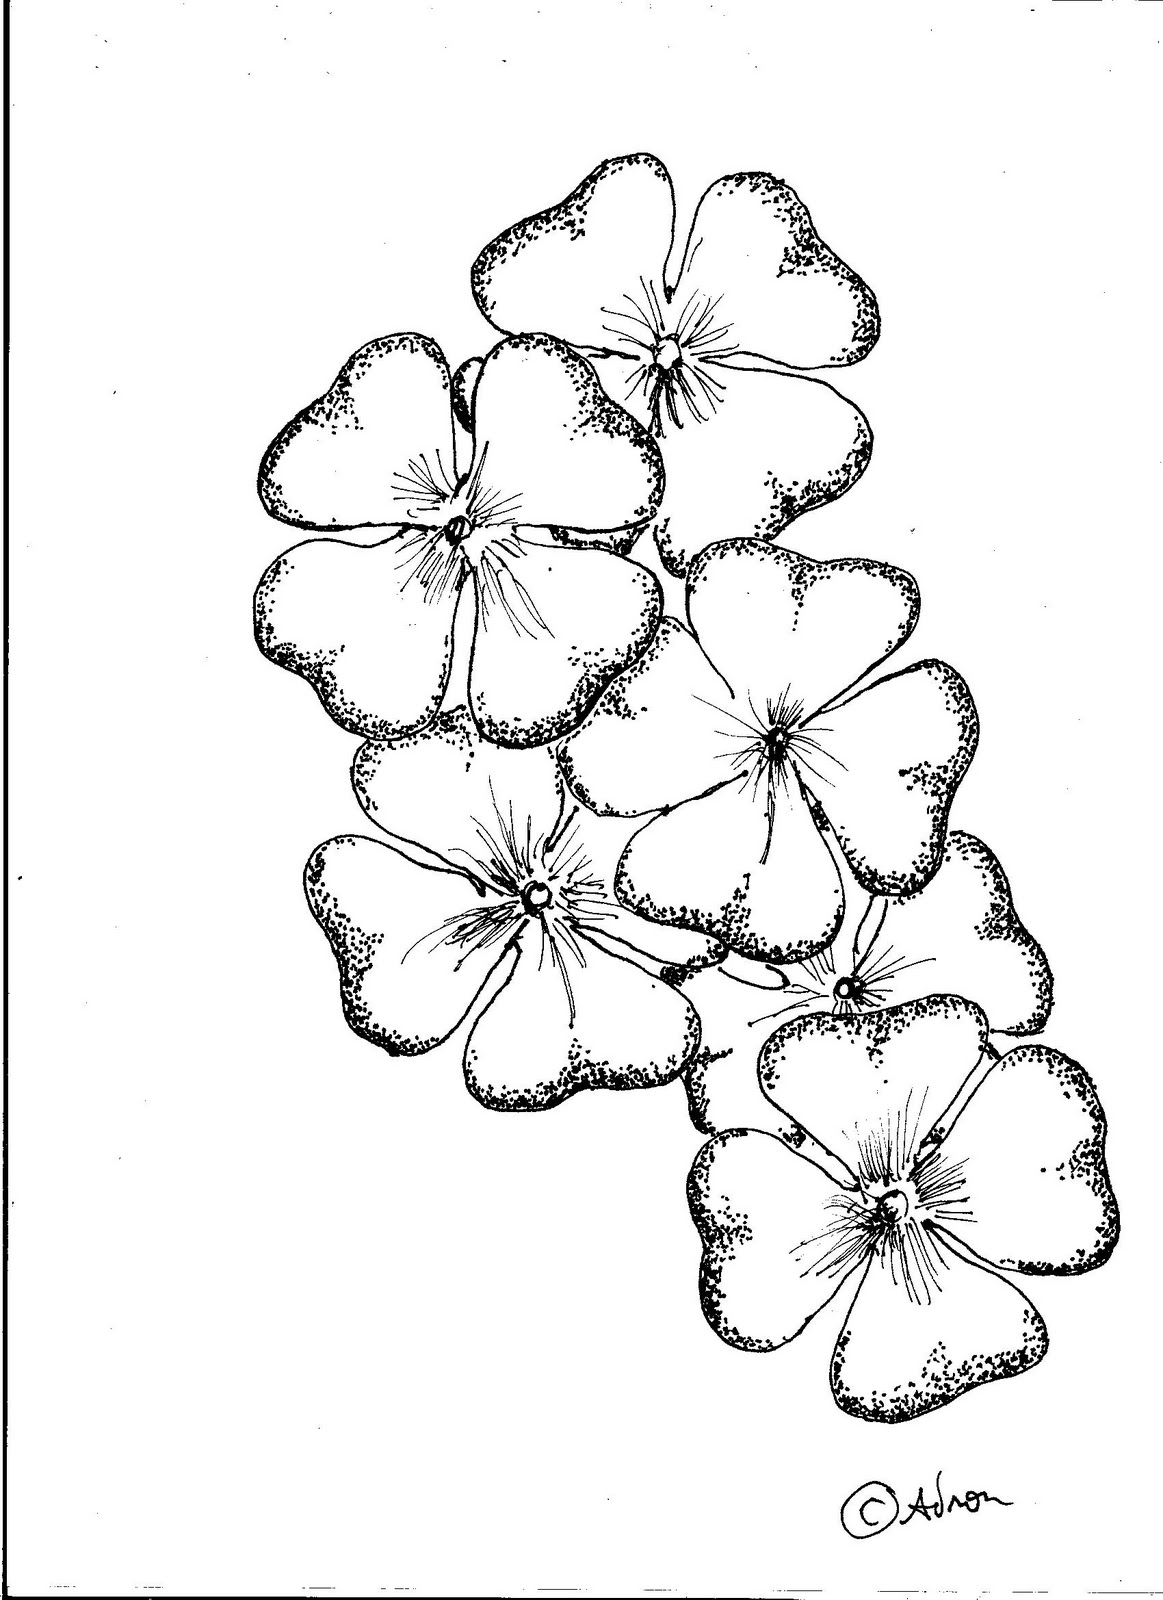 The Best Free Clover Drawing Images Download From 472